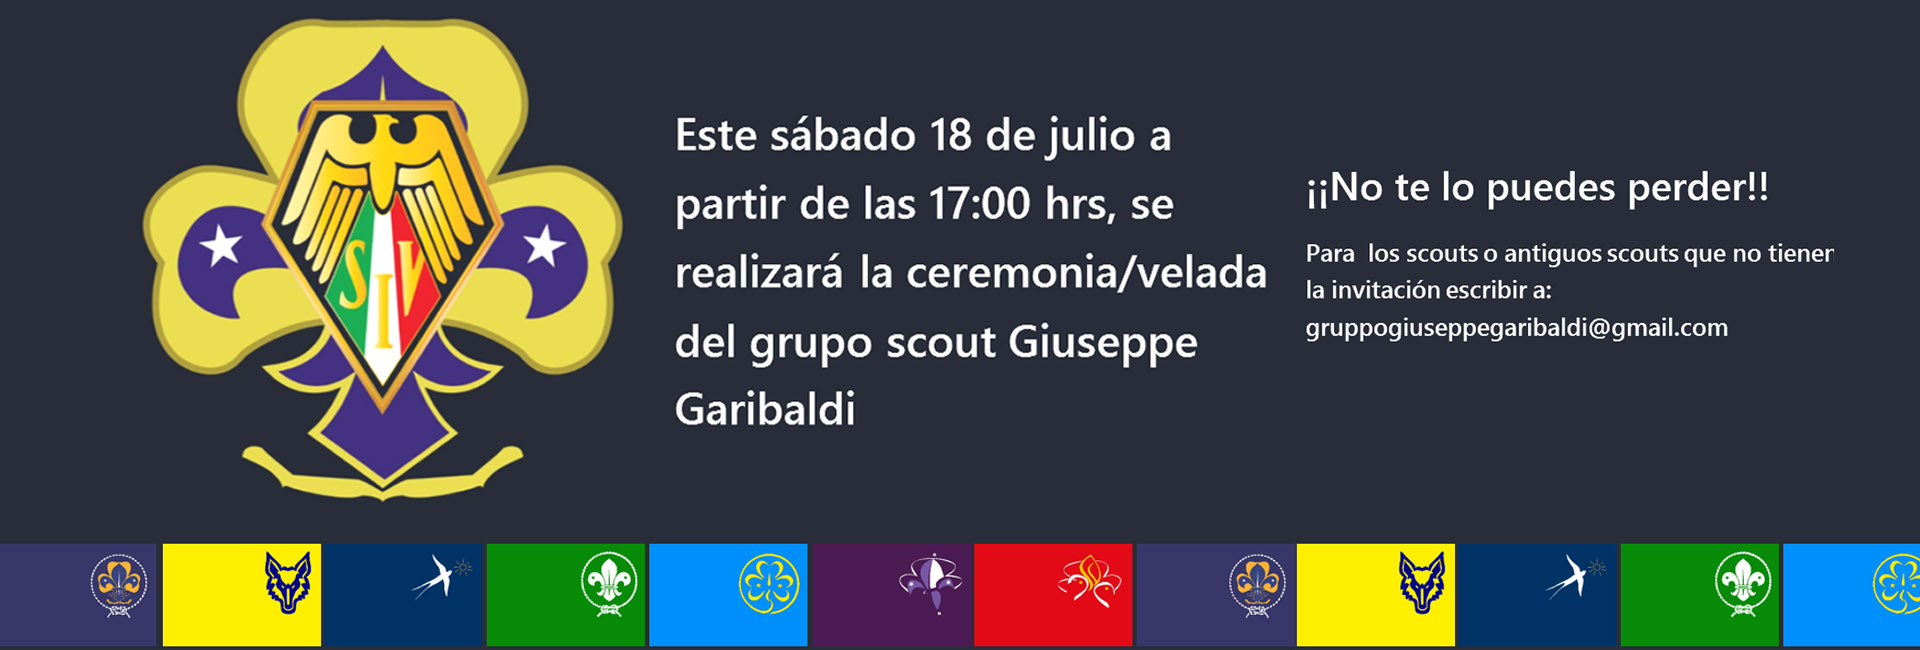 ceremonia scout